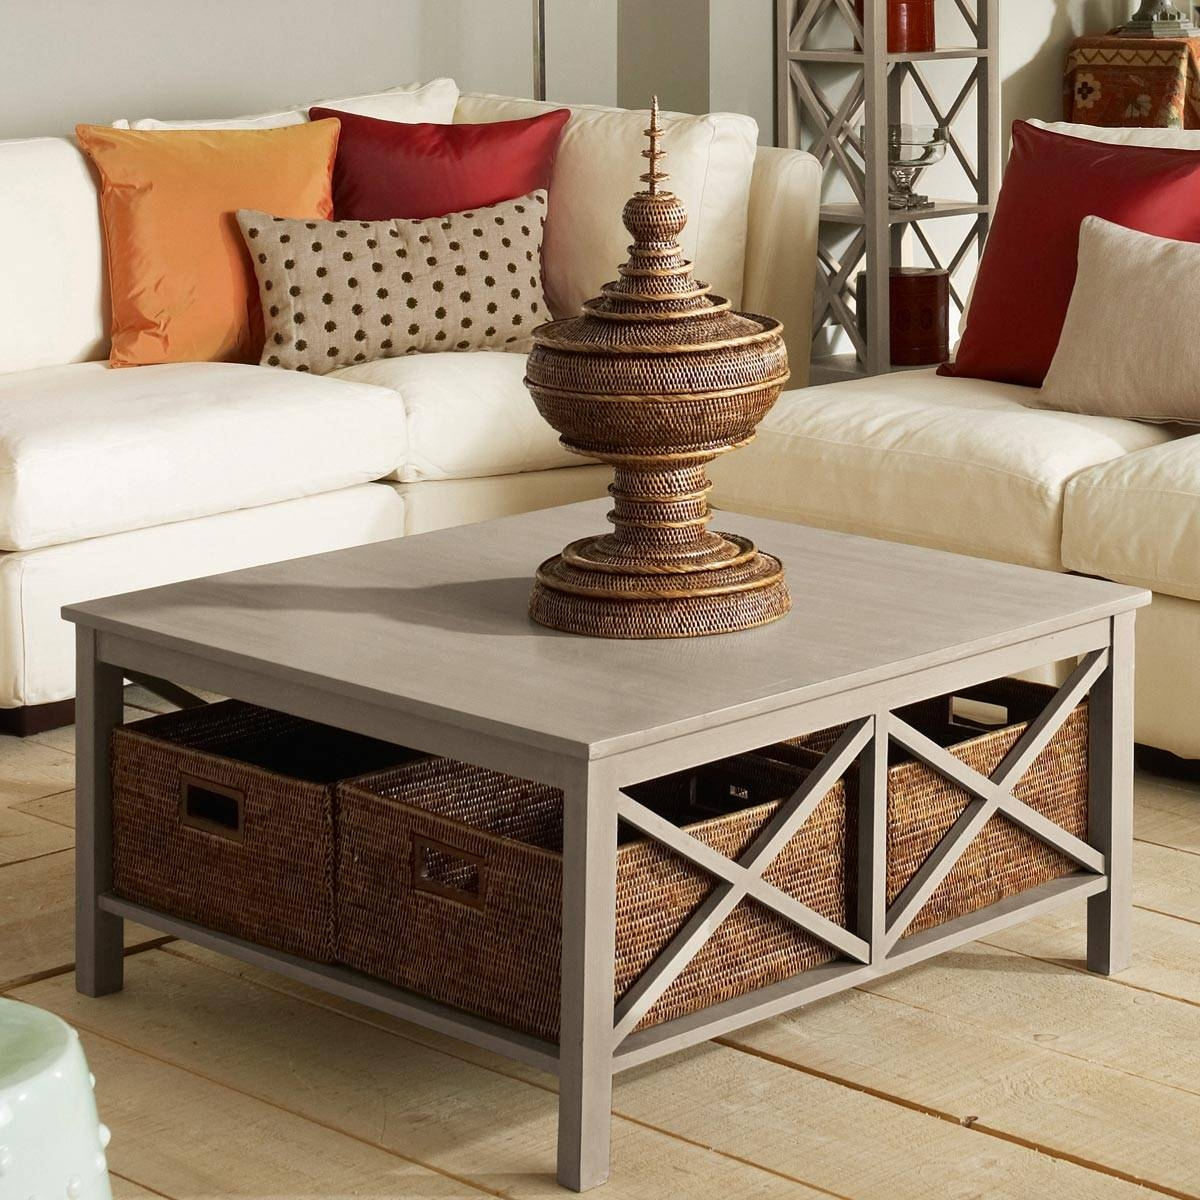 Rustic Square Coffee Table With Storage | Coffee Tables Decoration for Square Coffee Tables With Storage (Image 22 of 30)